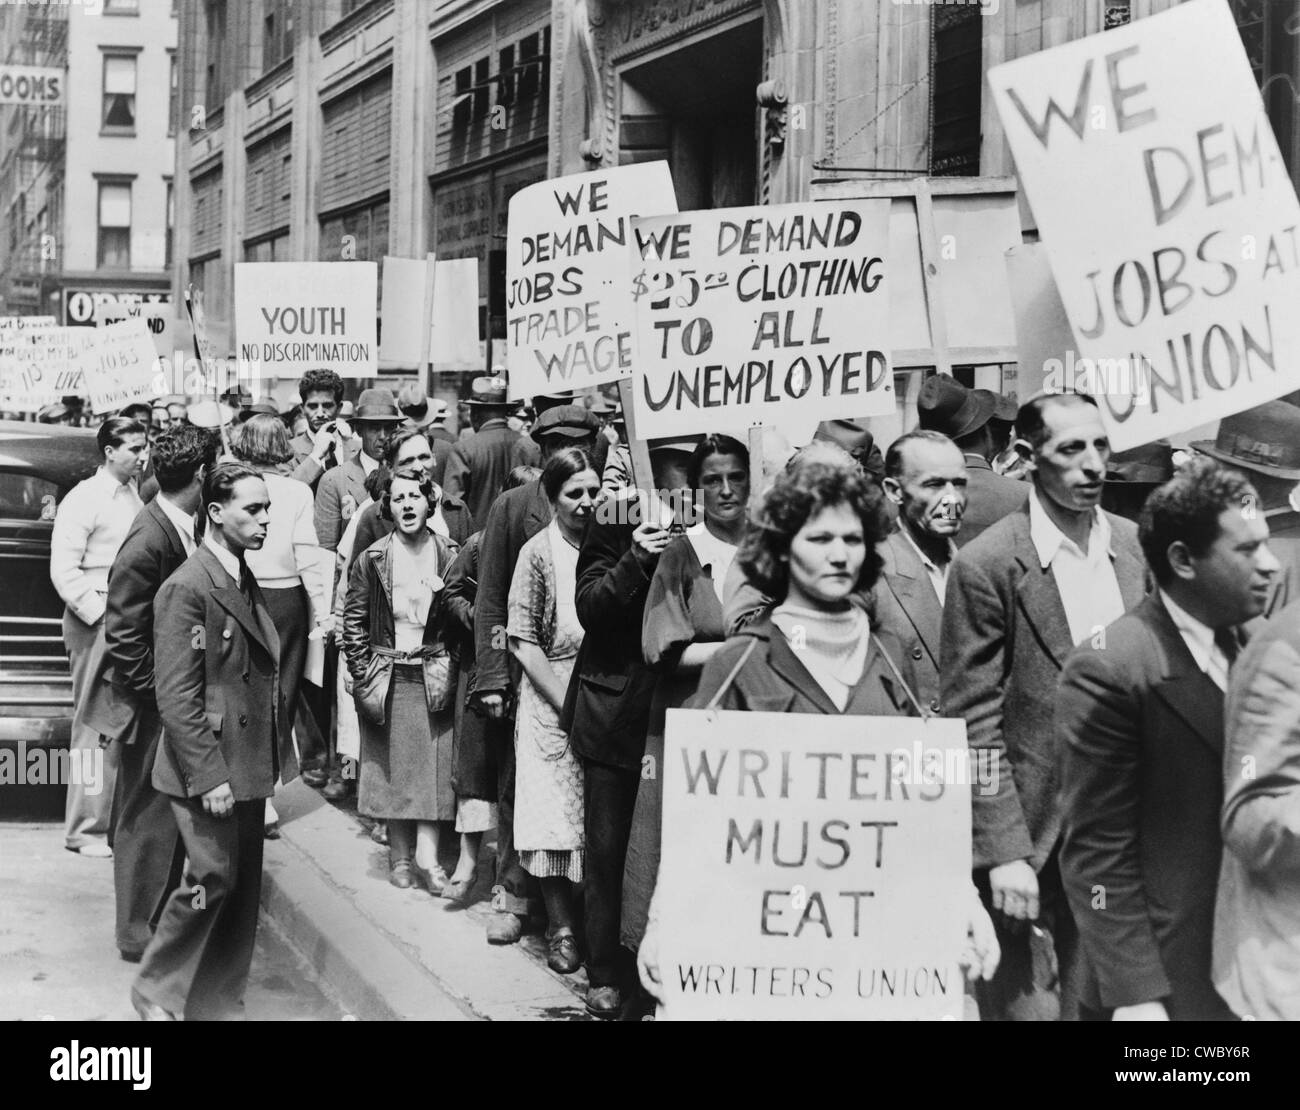 Unemployed New Yorkers demonstrate with signs in front of Emergency Relief Building in 1935. Signs demand clothing, - Stock Image